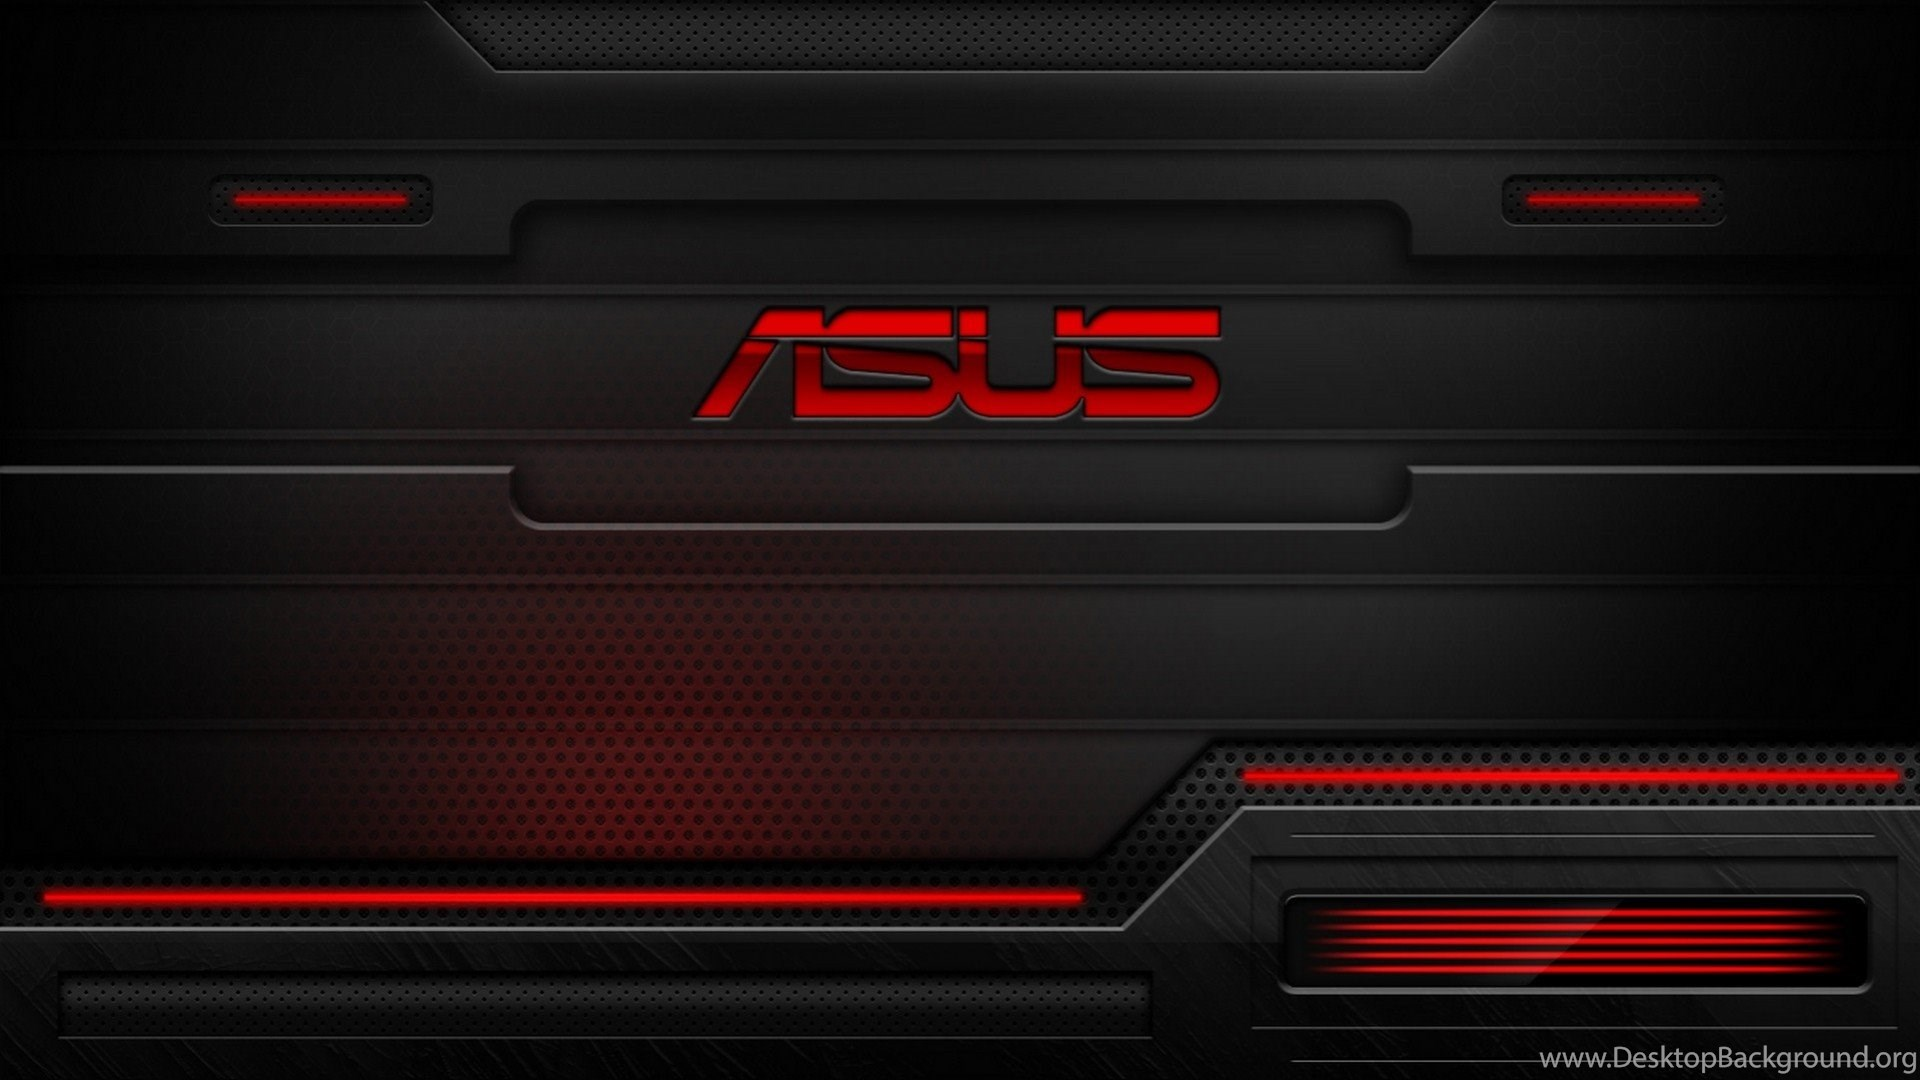 Hd red and black asus technology wallpapers for desktop - Asus x series wallpaper hd ...